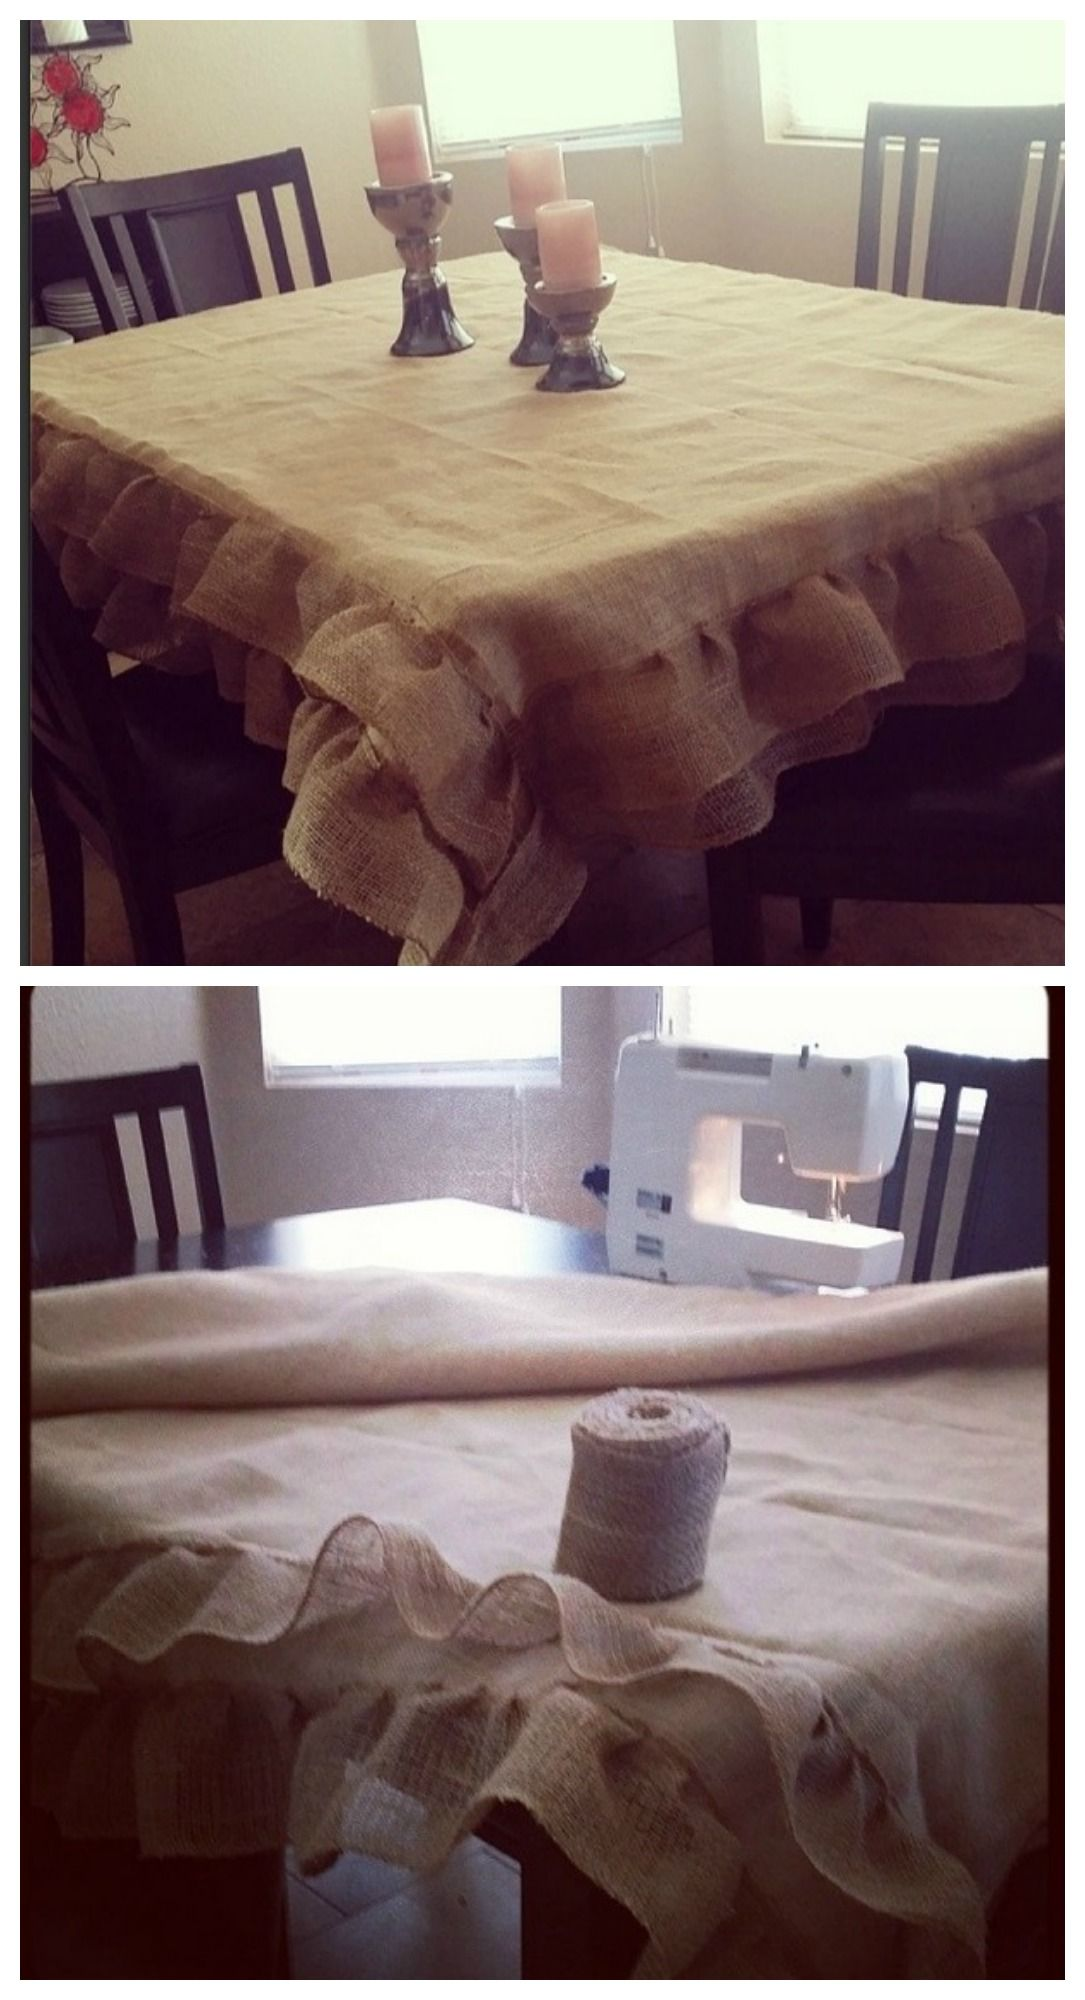 One of my favorite! made this for my friends as gifts. always a hit. Burlap Tablecloth- really cute outside on back terrace table. bit shorter than inspiration but Burlap can be itchy on skin ....and summer calls for shorts.  http://www.pinterest.com/pin/267893877806342475/